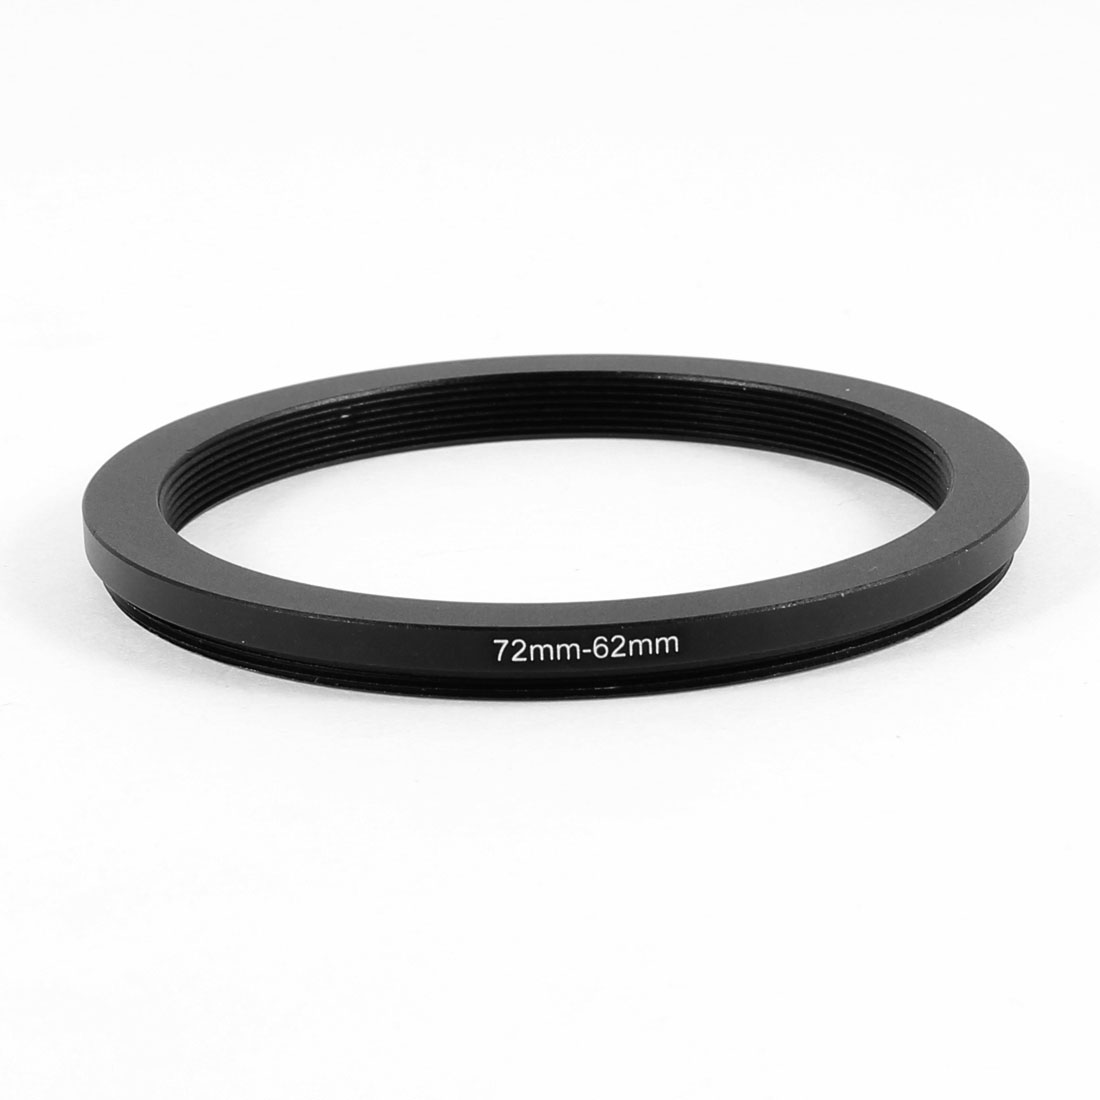 72mm to 62mm Camera Filter Lens 72mm-62mm Step Down Ring Adapter